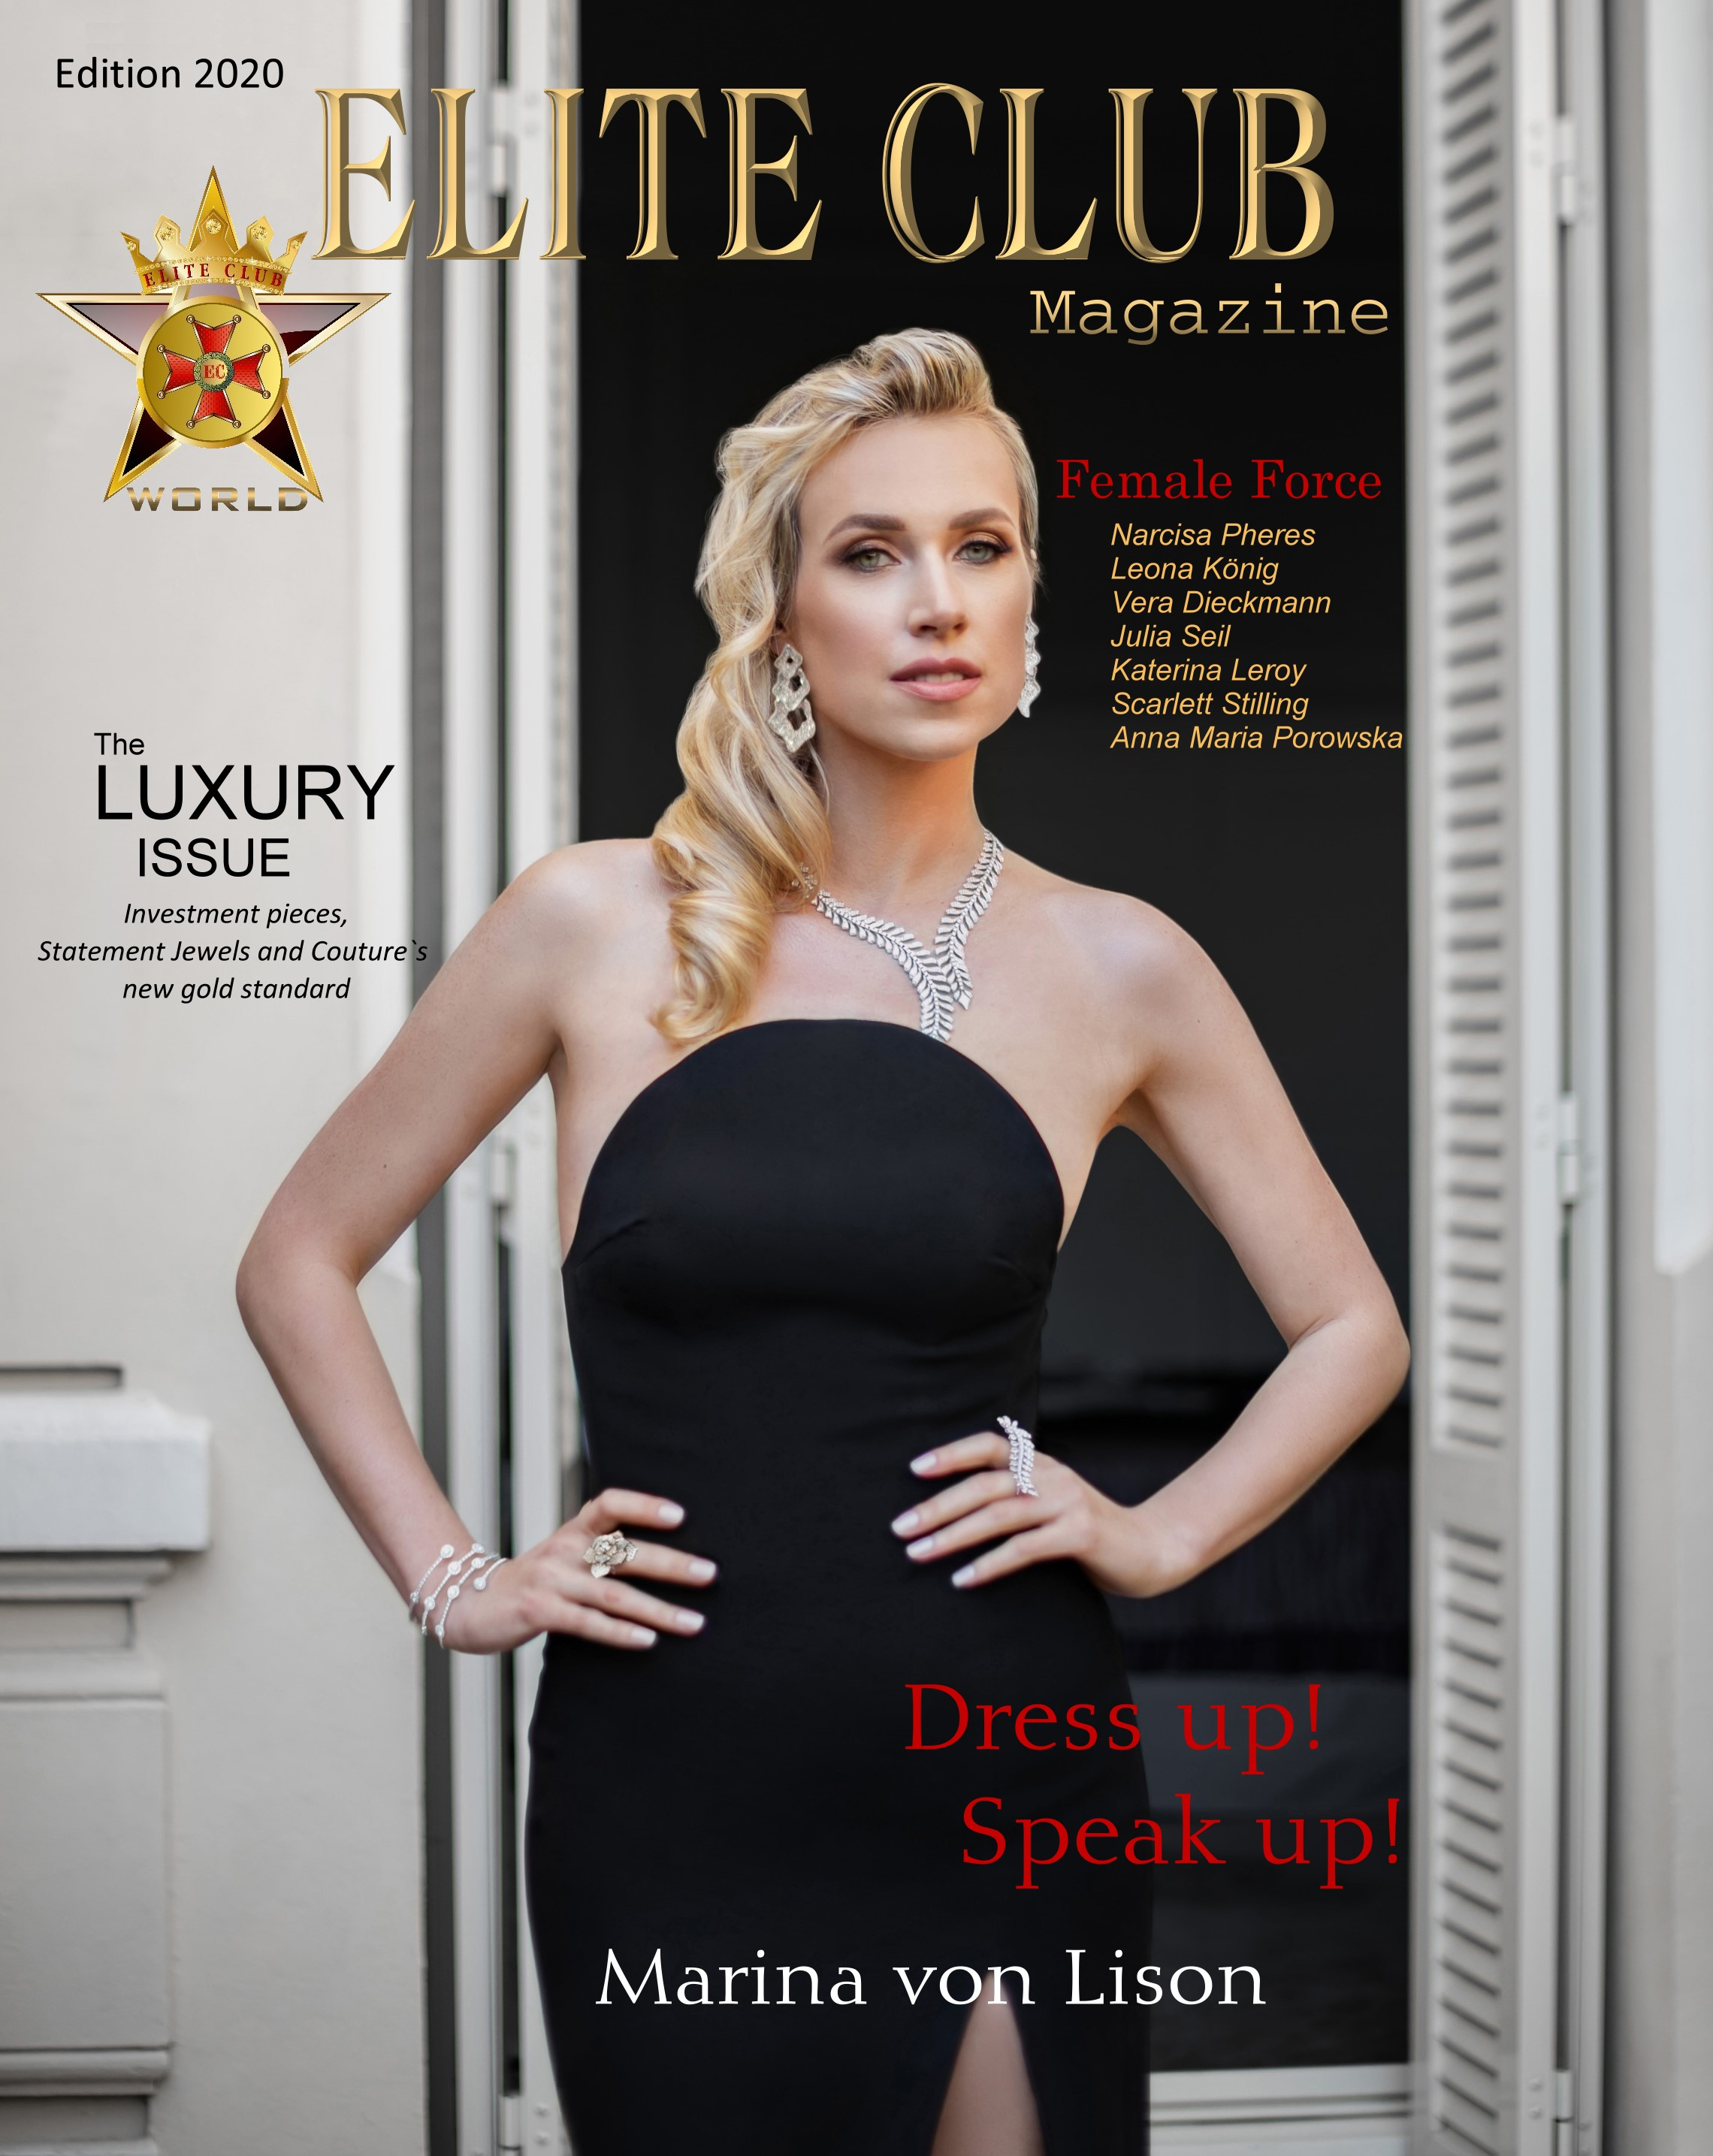 Ende-COVER ELITE CLUB- MAGAZINE-31.5.20